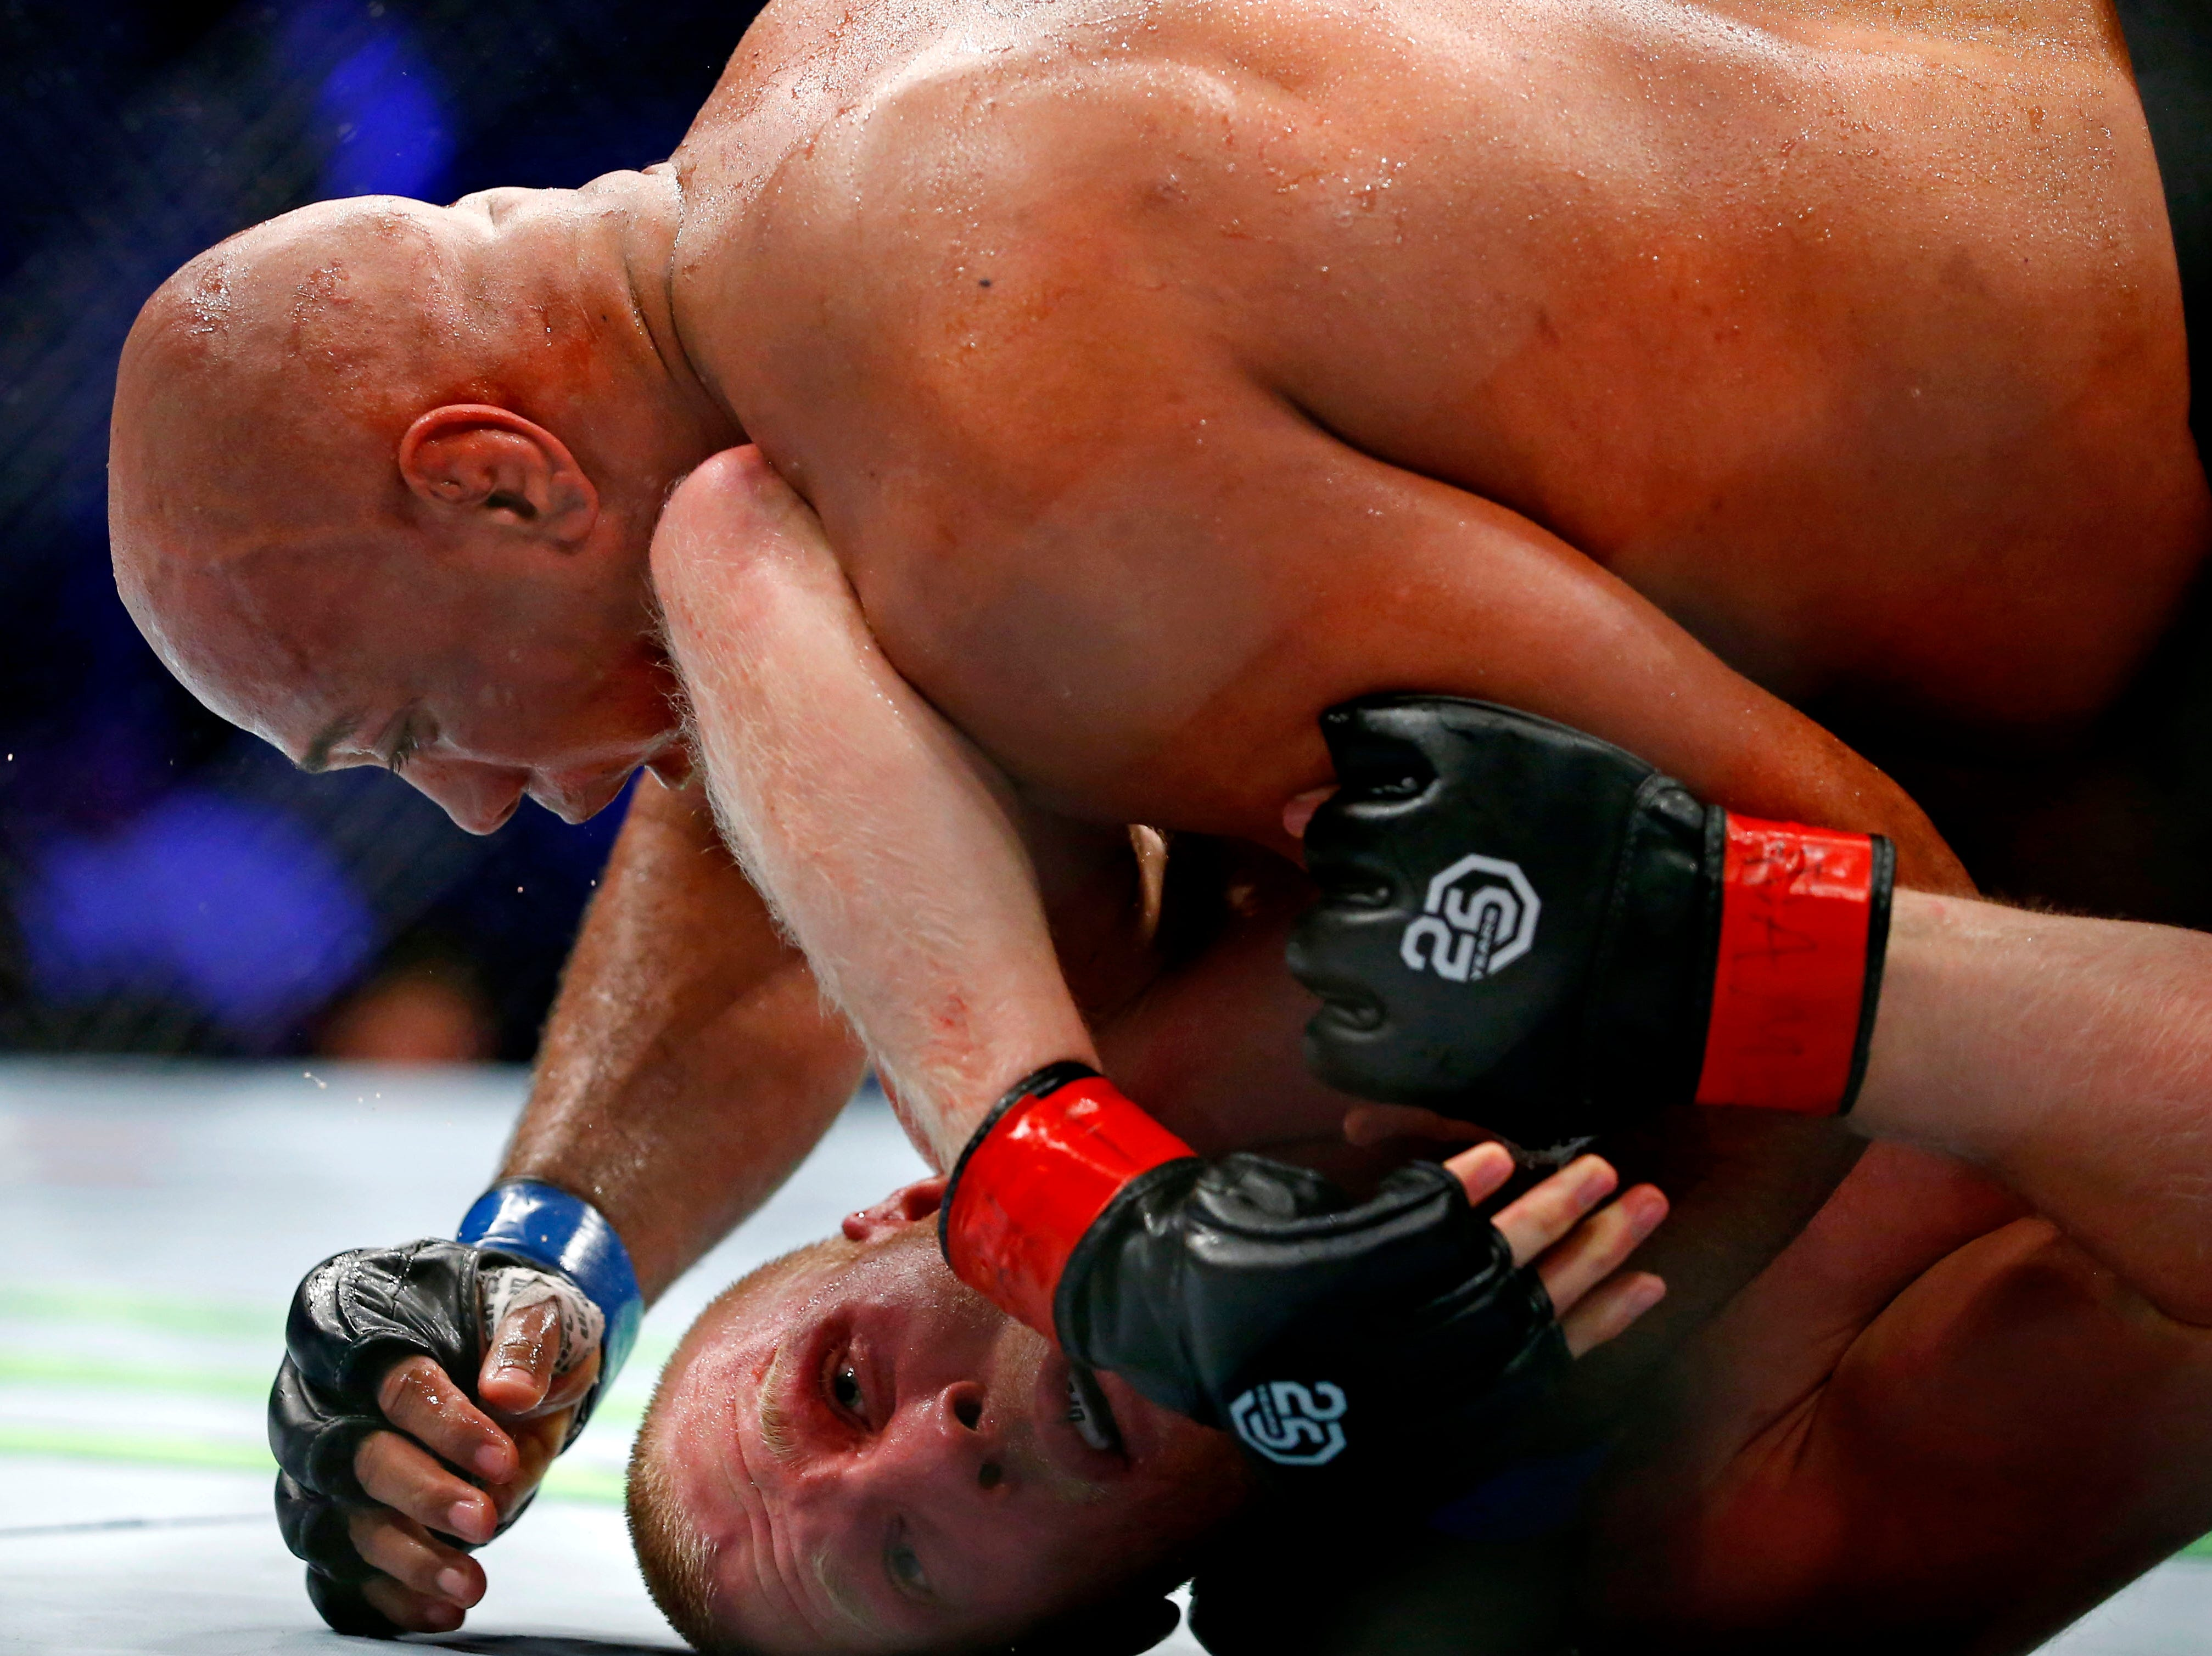 Adam Wieczorek (red gloves) fights Marcos Rogerio De Lima (blue gloves) during UFC 230 at Madison Square Garden.